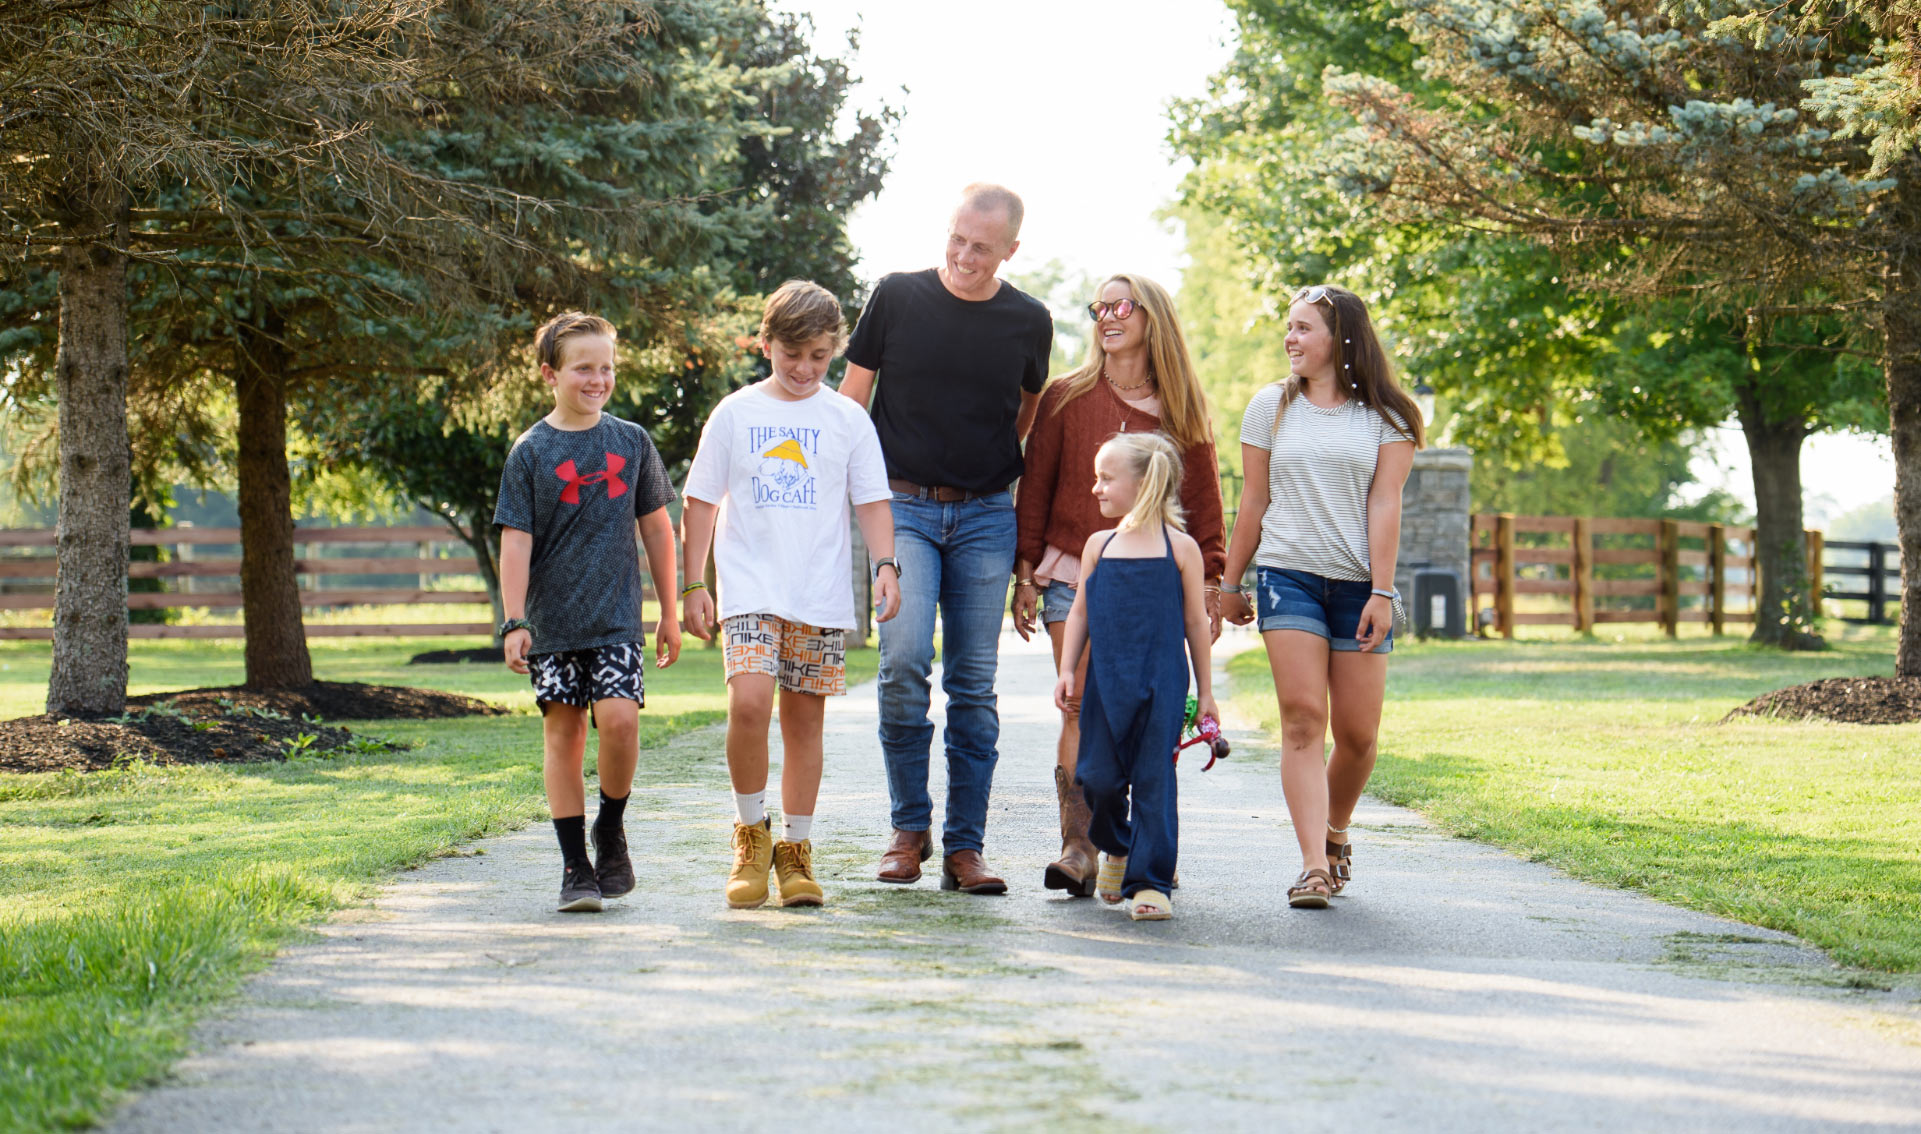 Dr. Day and his family walk down the driveway of their house together as they all smile while looking towards Dr. Day.